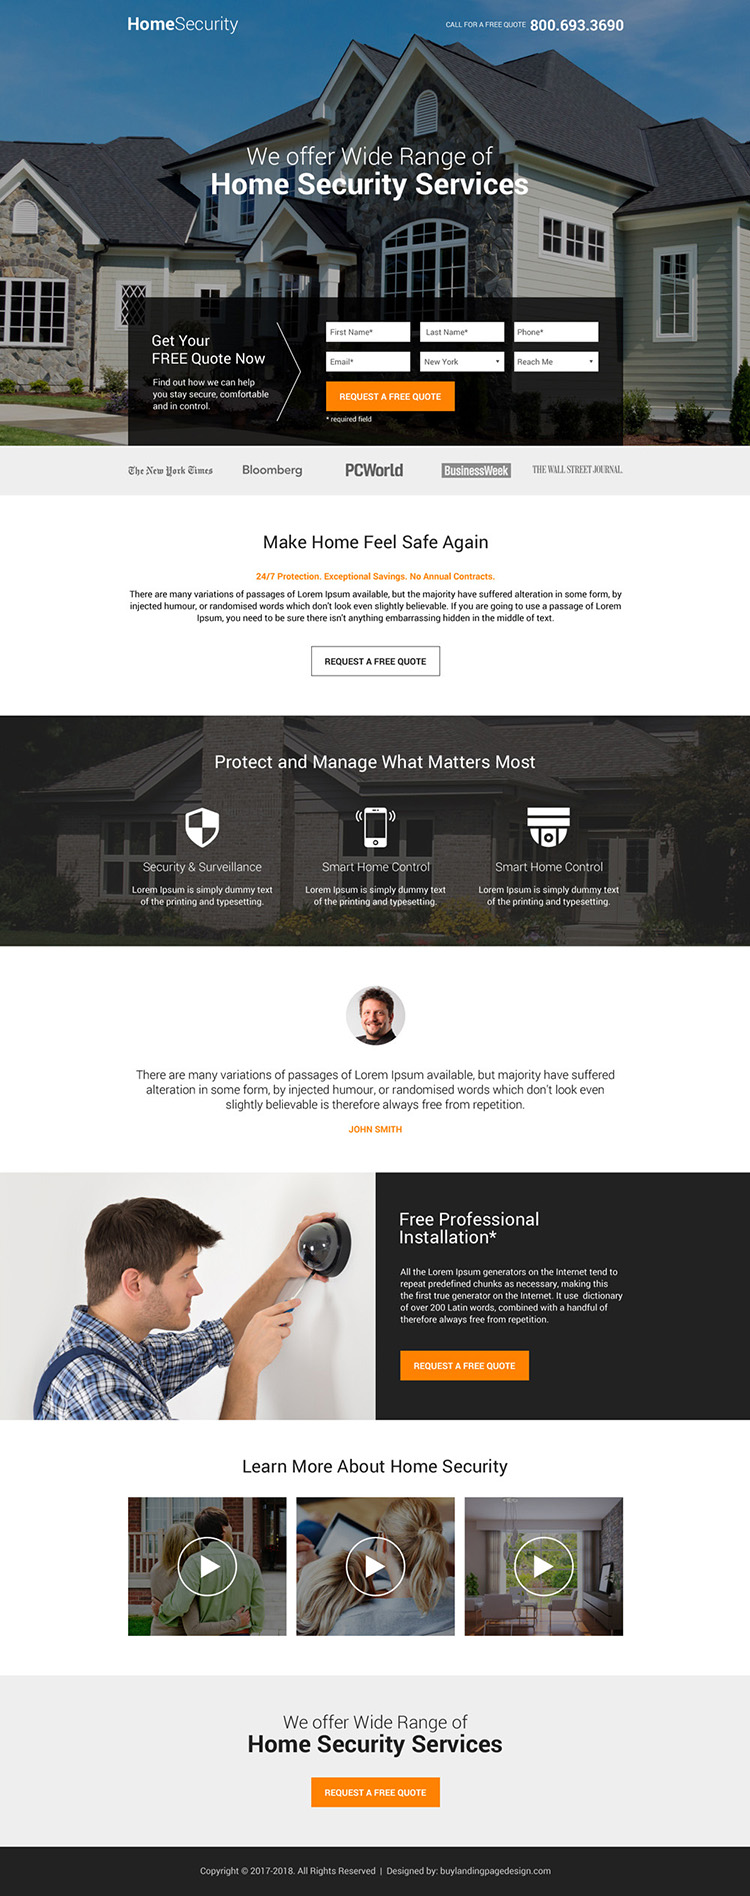 responsive home security service lead generating landing page